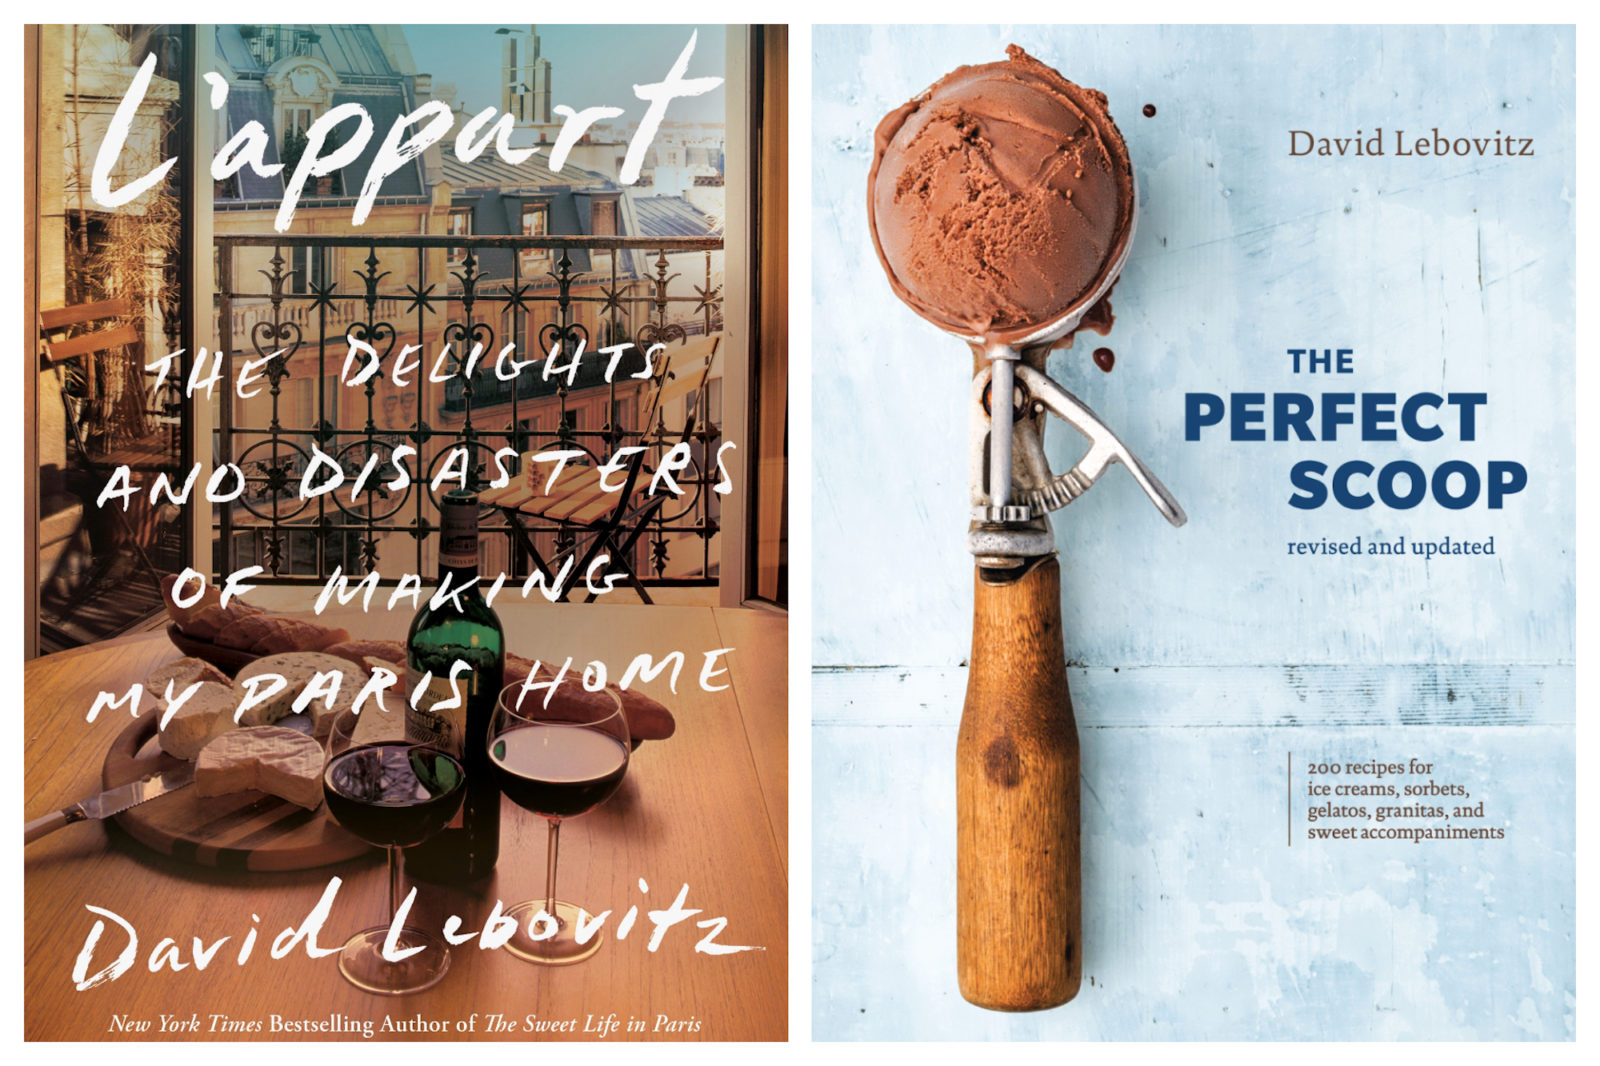 Author David Lebovitz's books about living in Paris are among our favorites, including 'L'Appart, the Delights and Disaster of Making Paris My Home' (left). And 'The Perfect Scoop' that has 200 recipes for ice cream and sorbets (right).